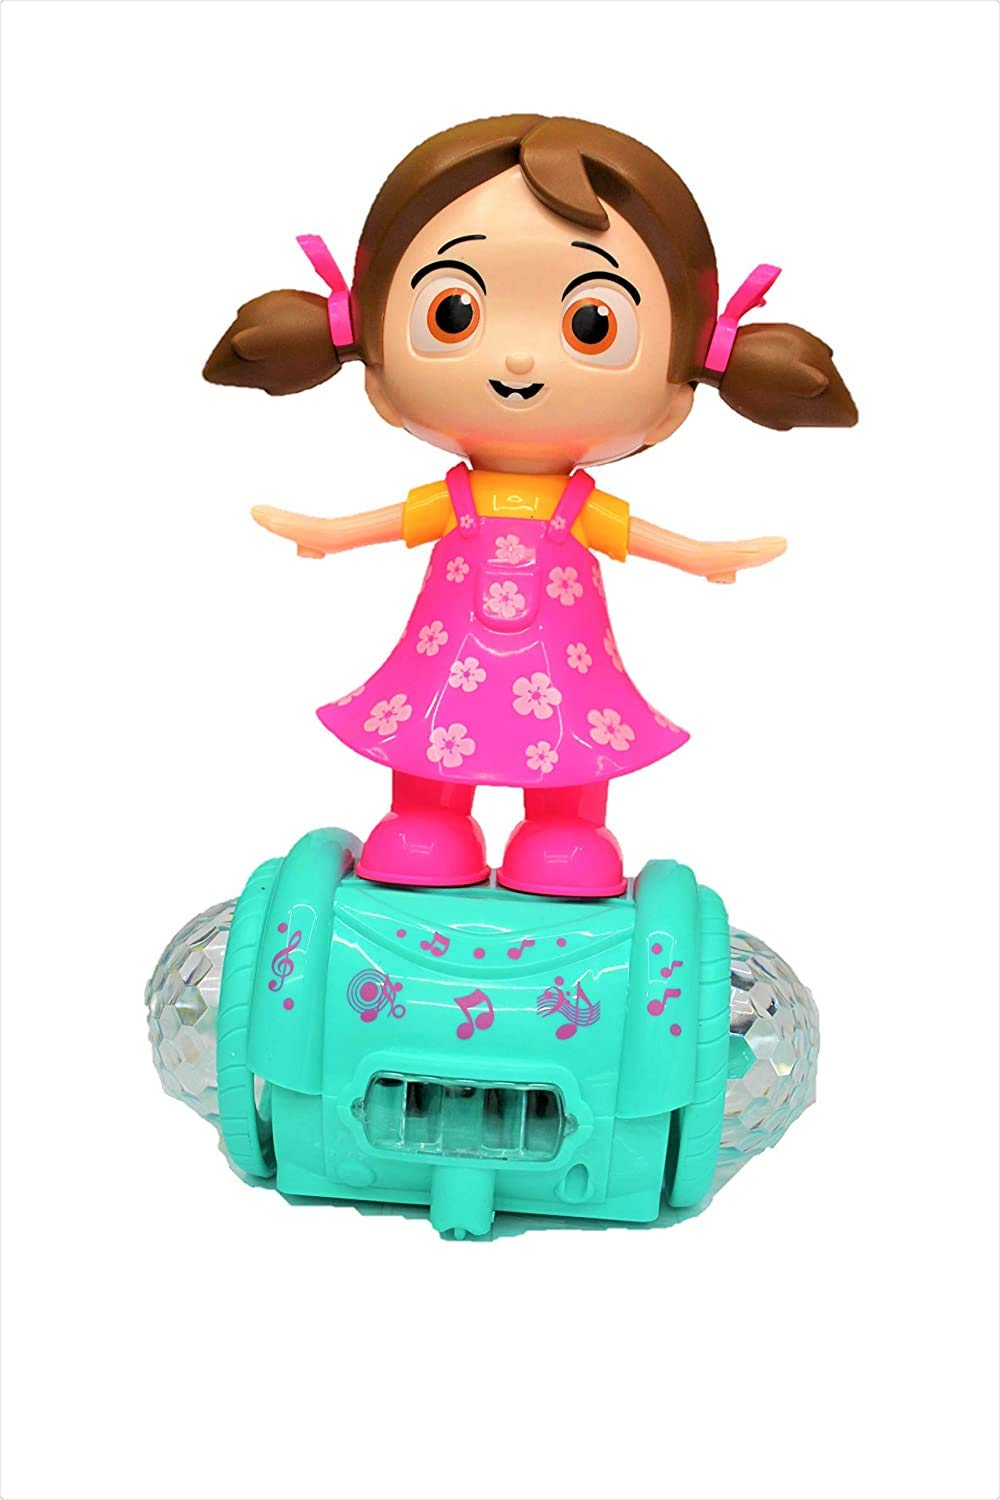 Wirescorts 360 degree rotating musical dancing girl toy for ₹449